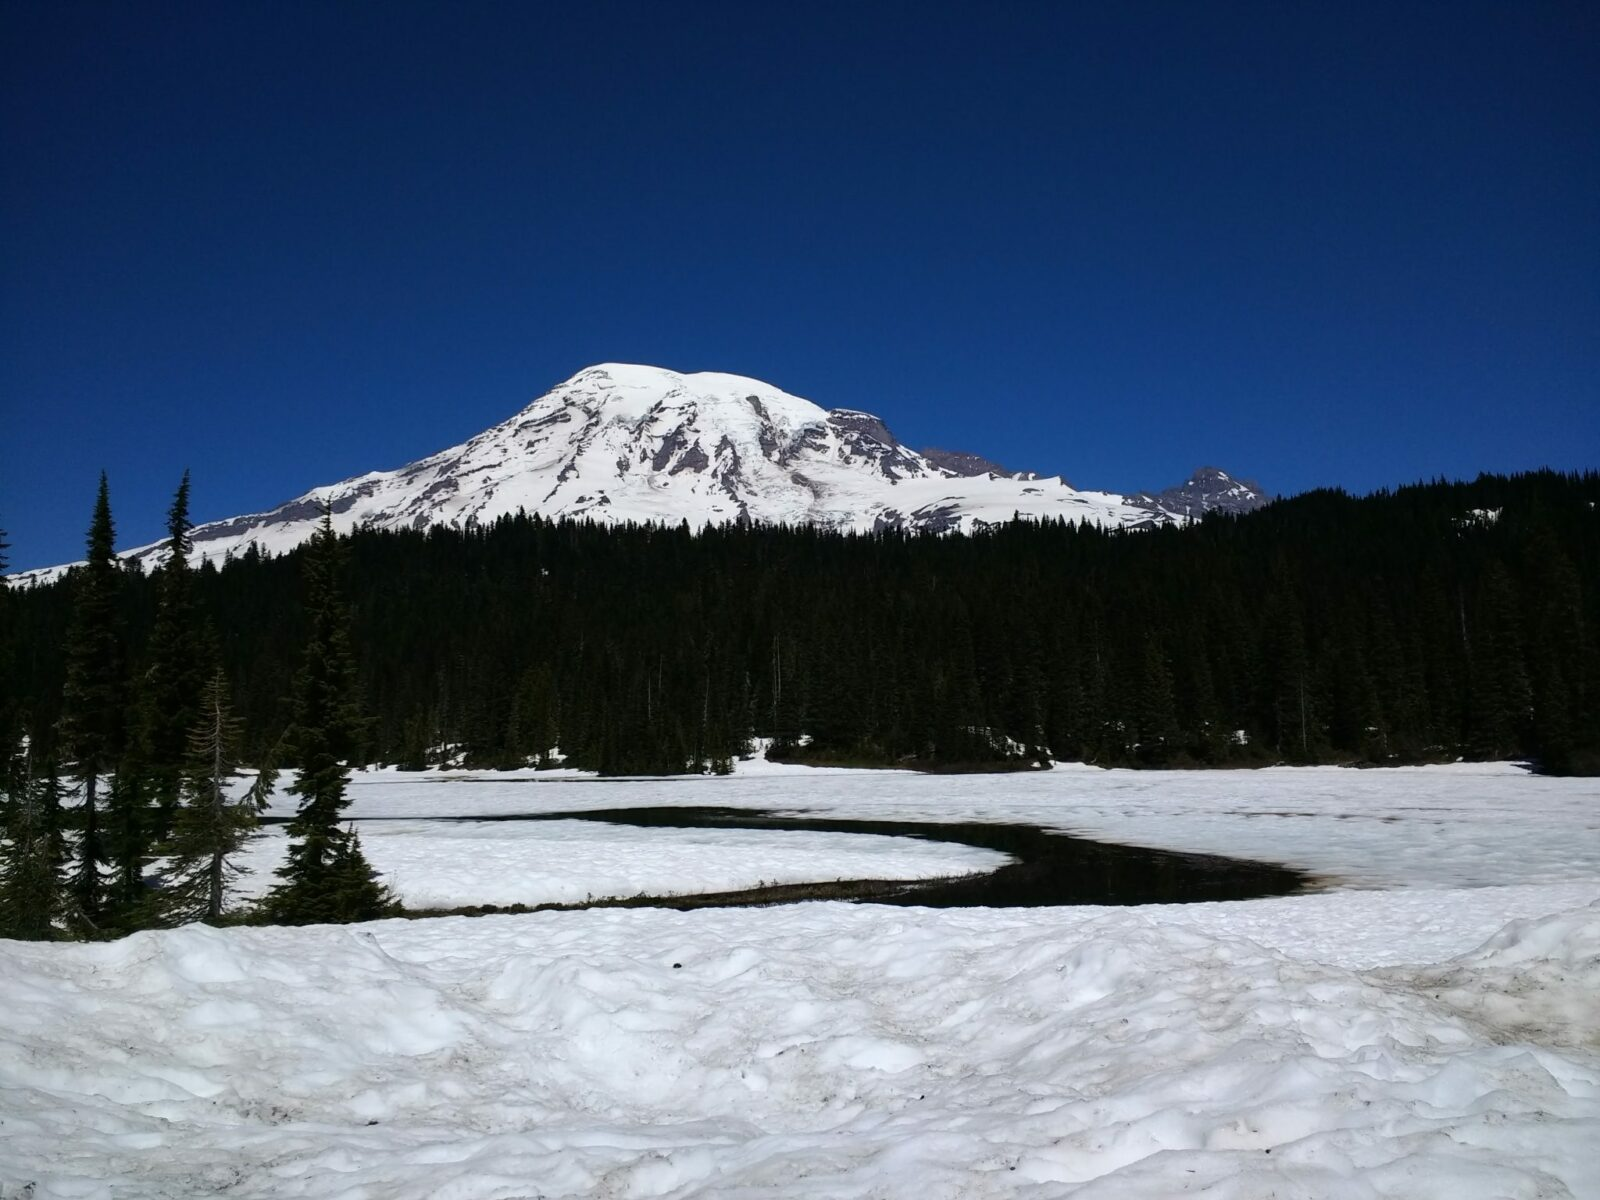 A large snow covered mountain behind forested hills. A partially frozen lake in the foreground